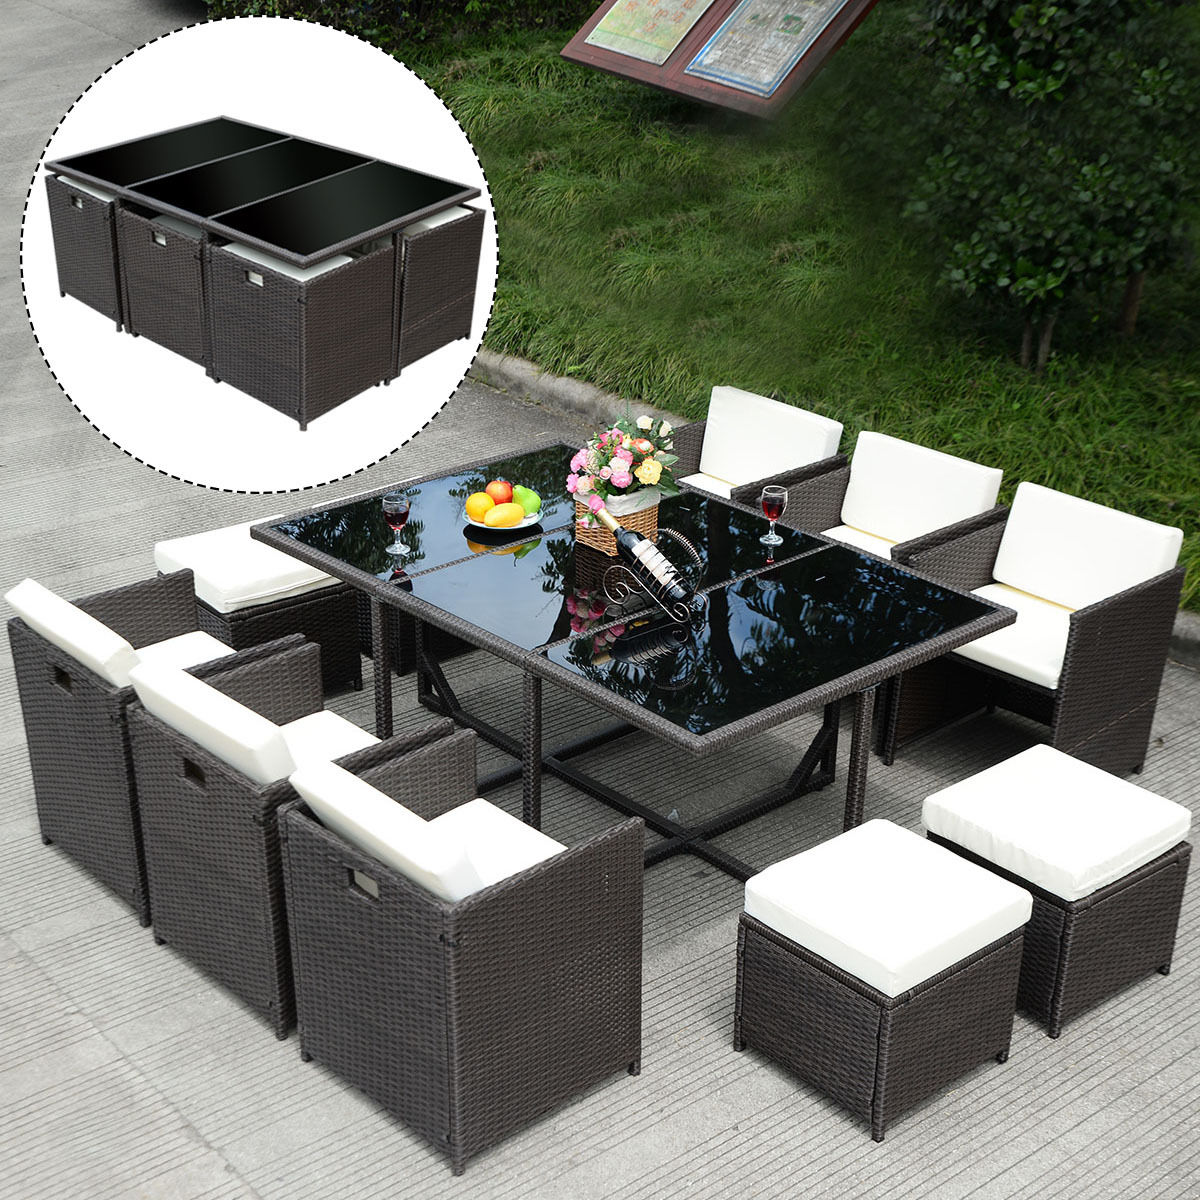 Click here to buy Costway 11 PCS Outdoor Patio Dining Room Set Metal Rattan Wicker Furniture Garden Cushioned by Costway.